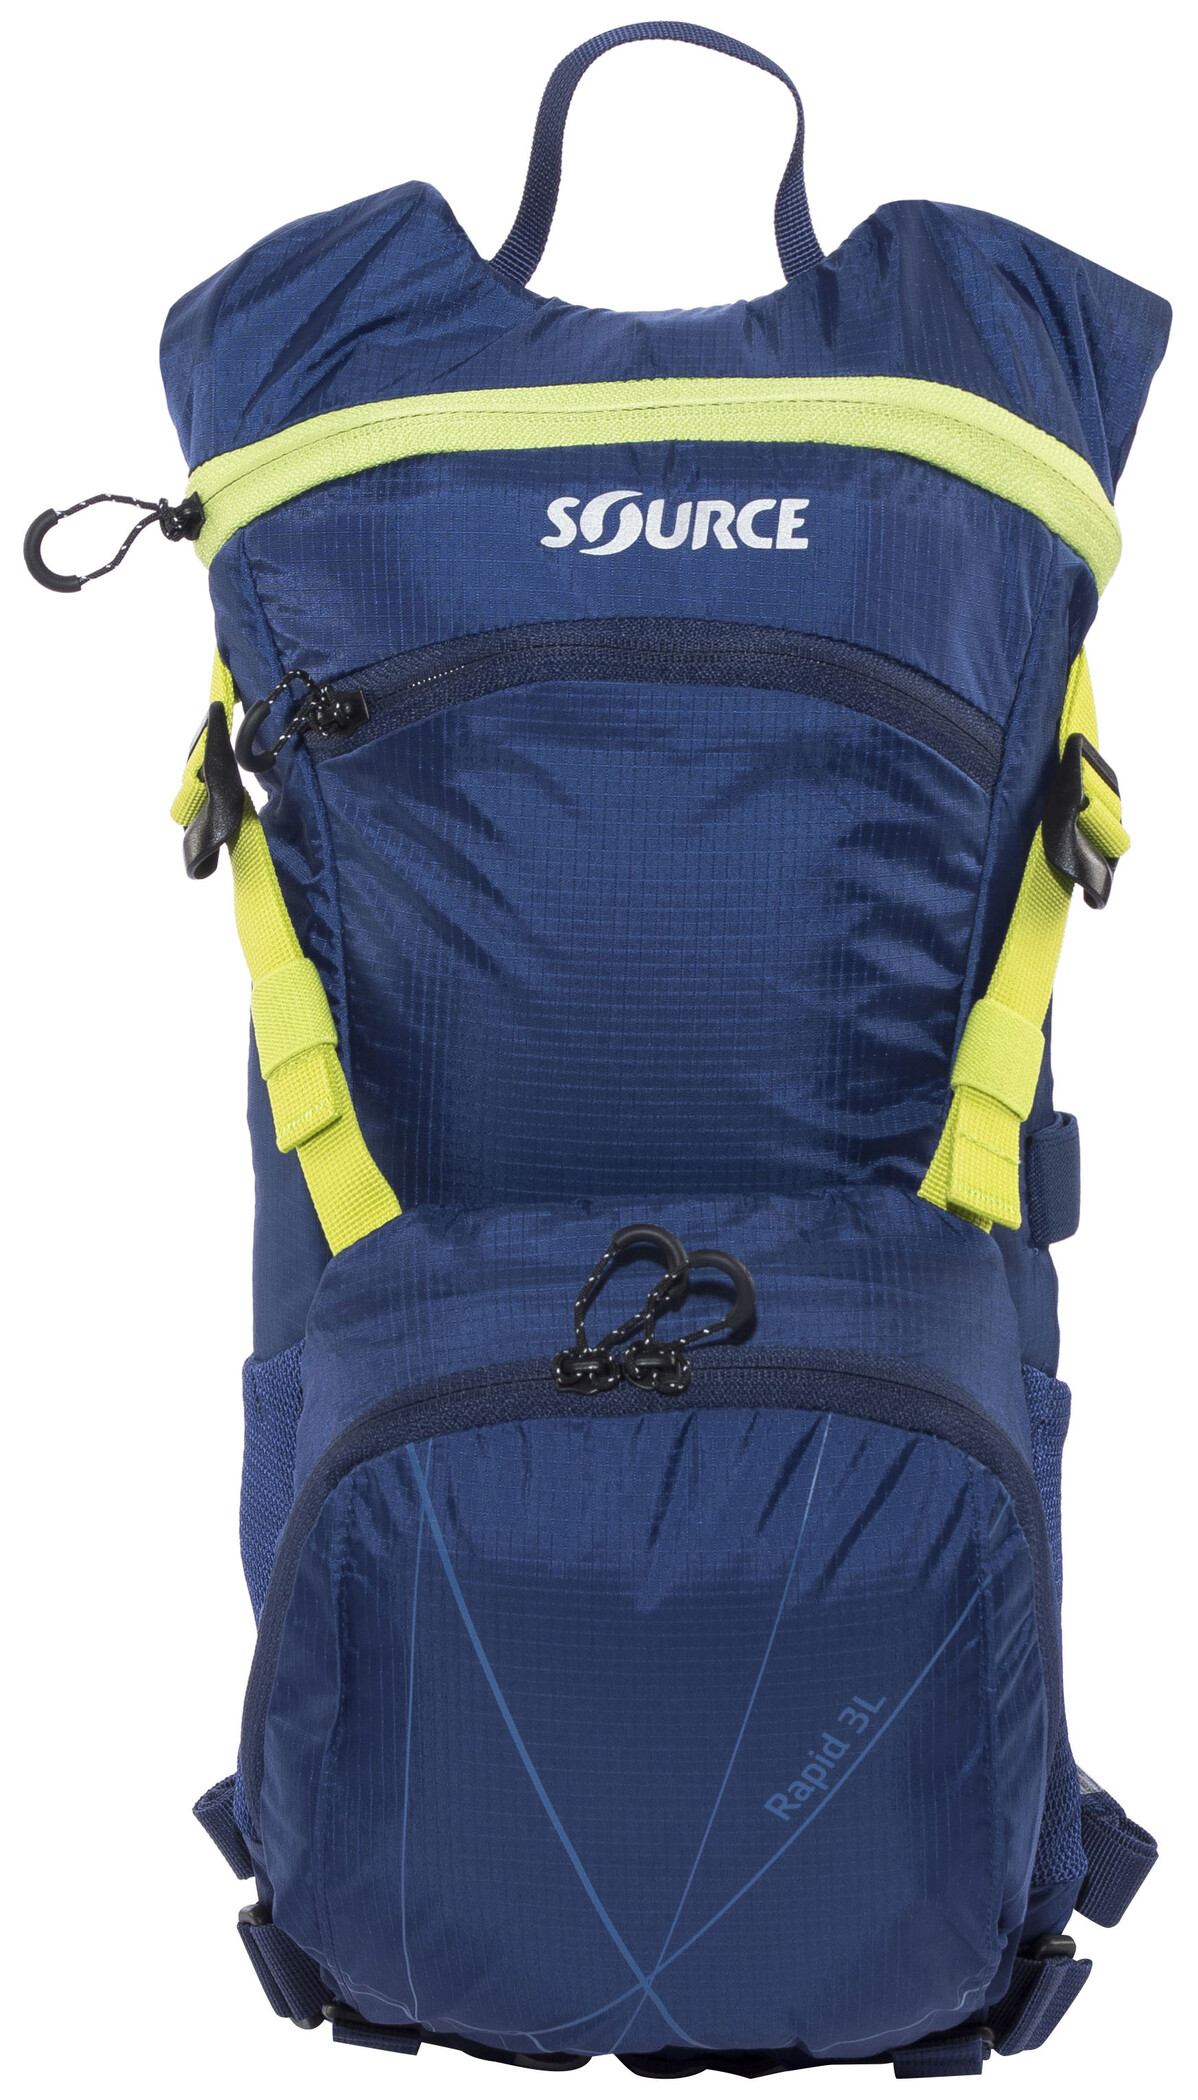 SOURCE Rapid Hydration Backpack 3 L, dark blue/green | Rygsæk og rejsetasker